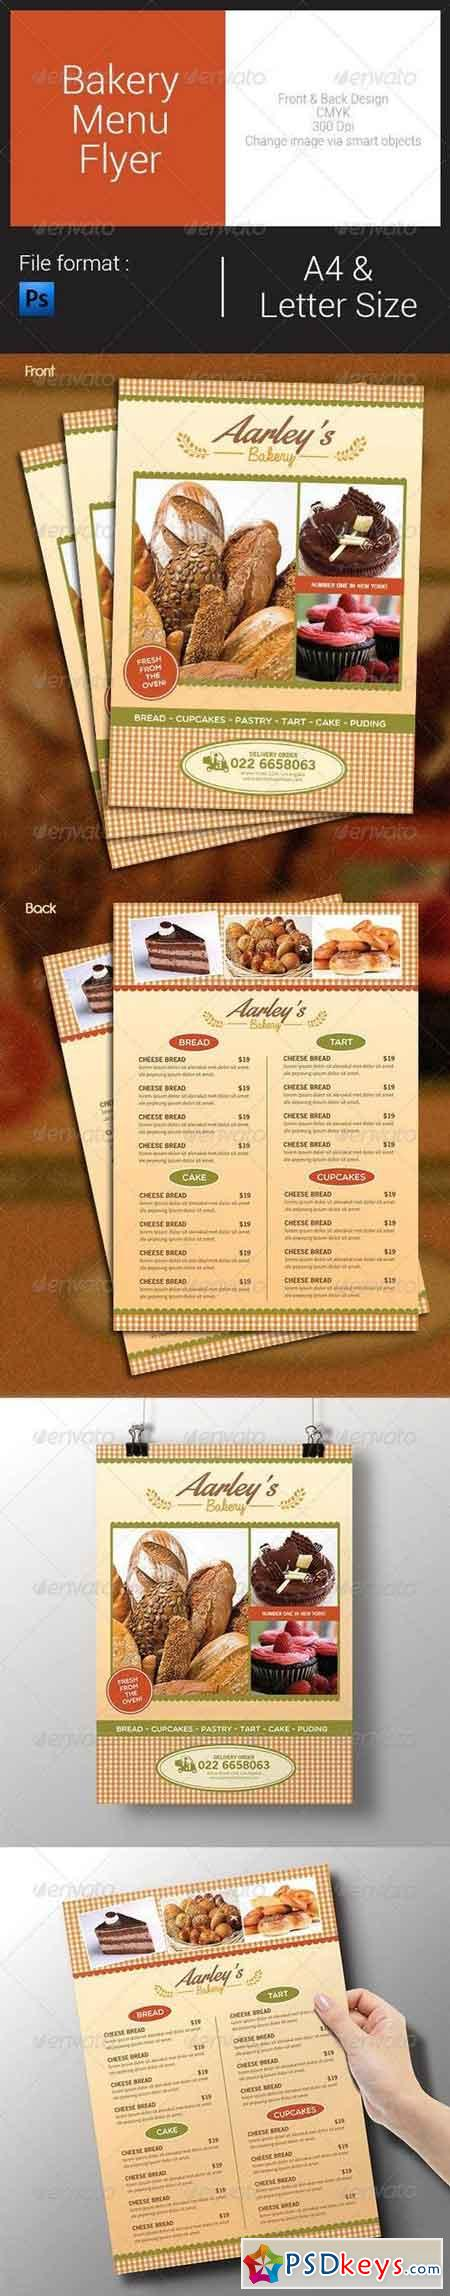 Bakery Menu Flyer 8189094